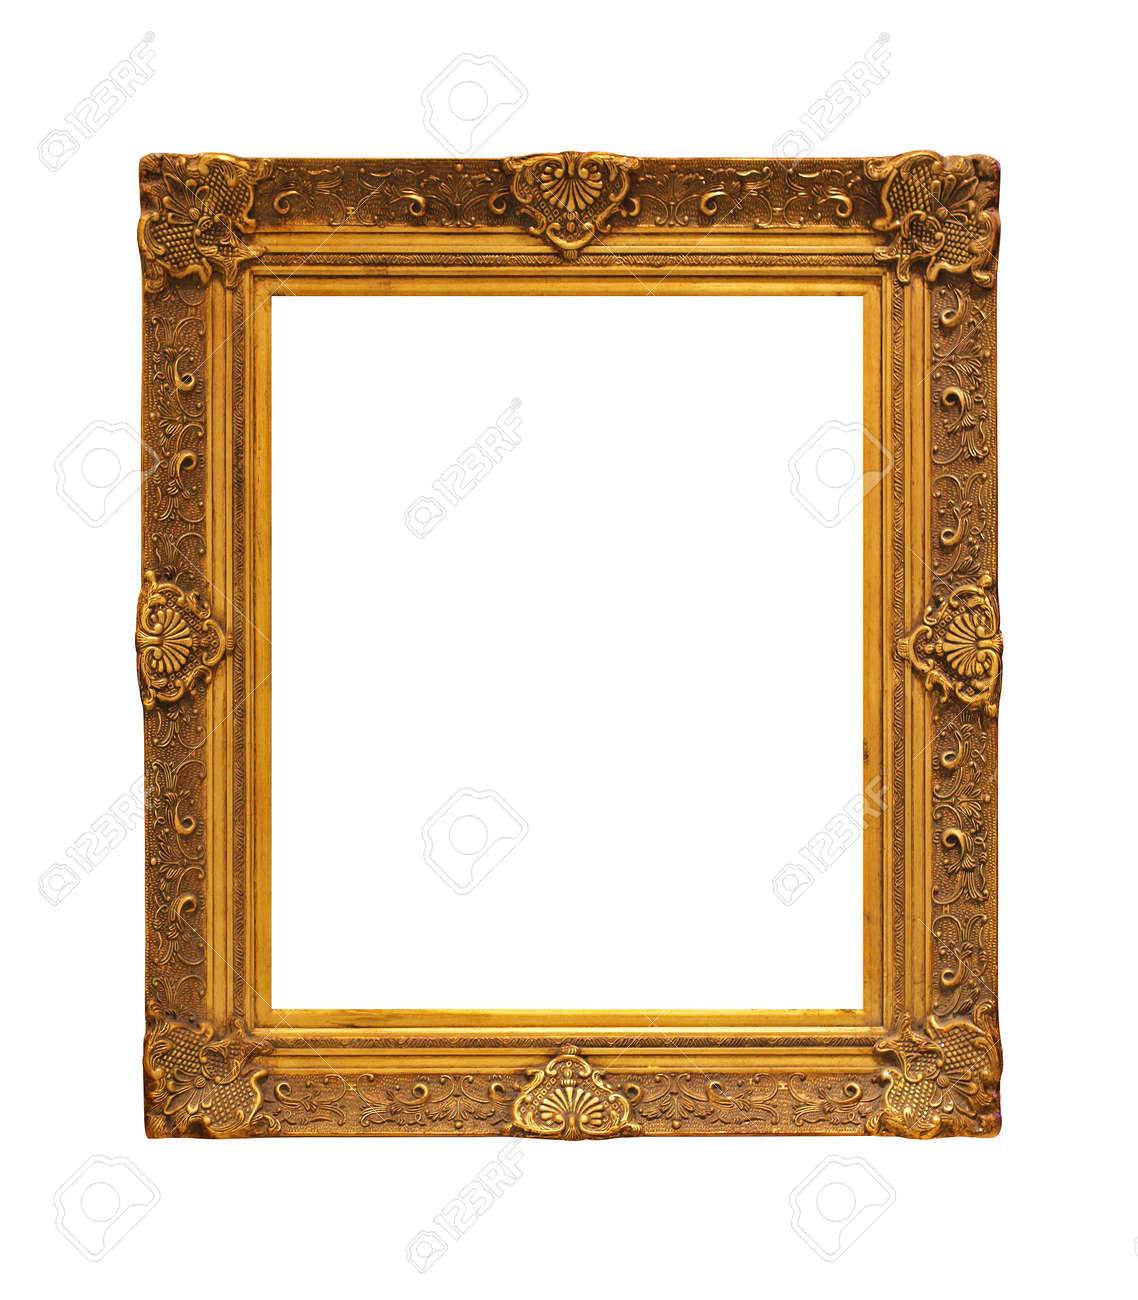 Golden picture frame isolated included clipping path Stock Photo - 17191495